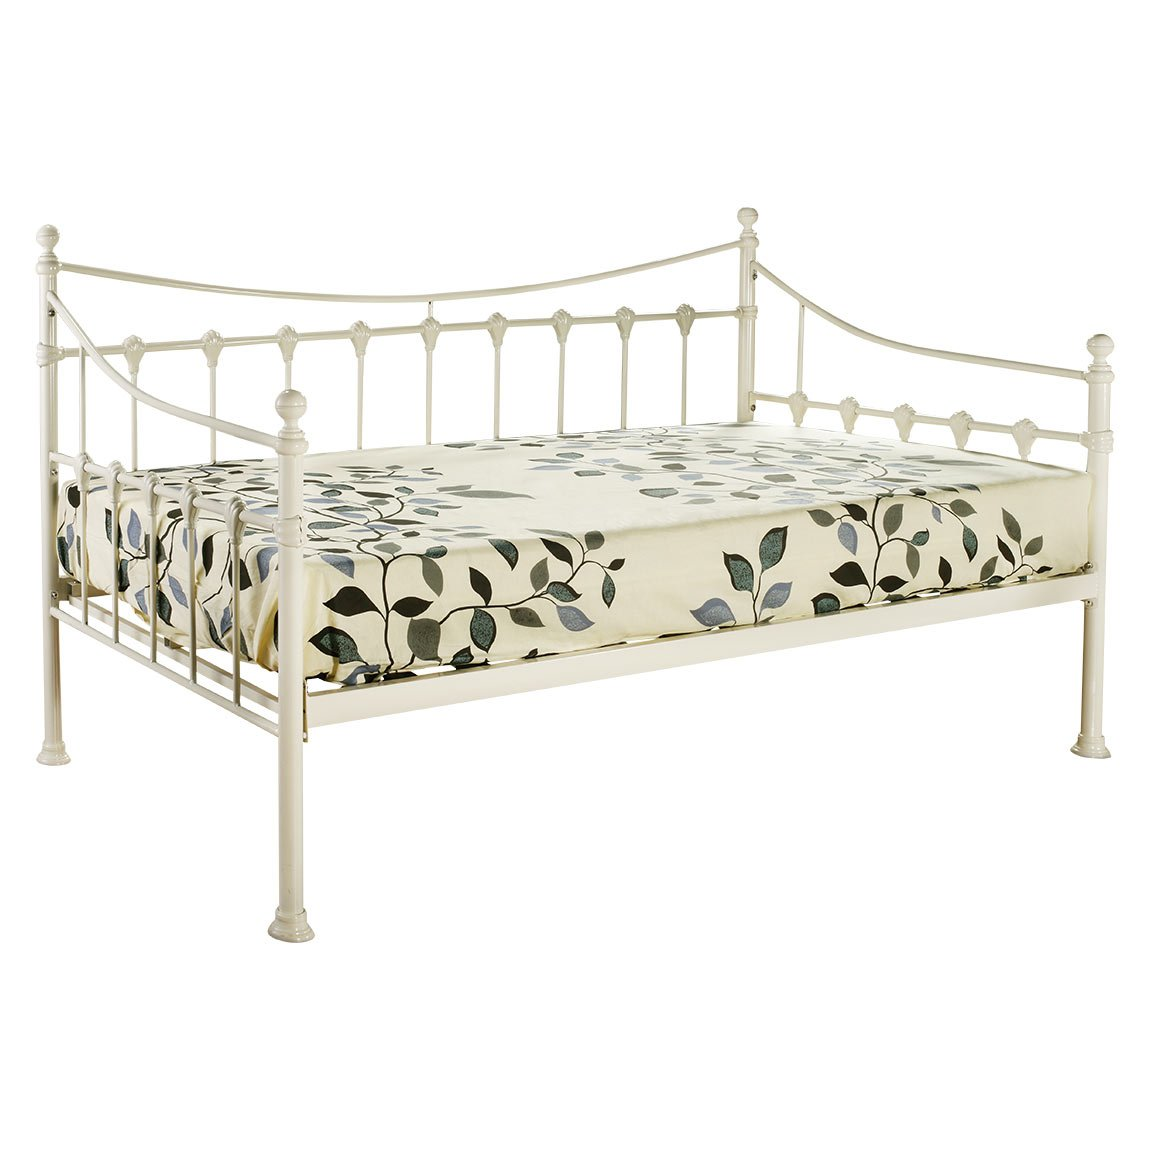 CHANTILLY 3FT SINGLE FRENCH STYLE METAL DAY BED IN IVORY WHITE       reviews and more information